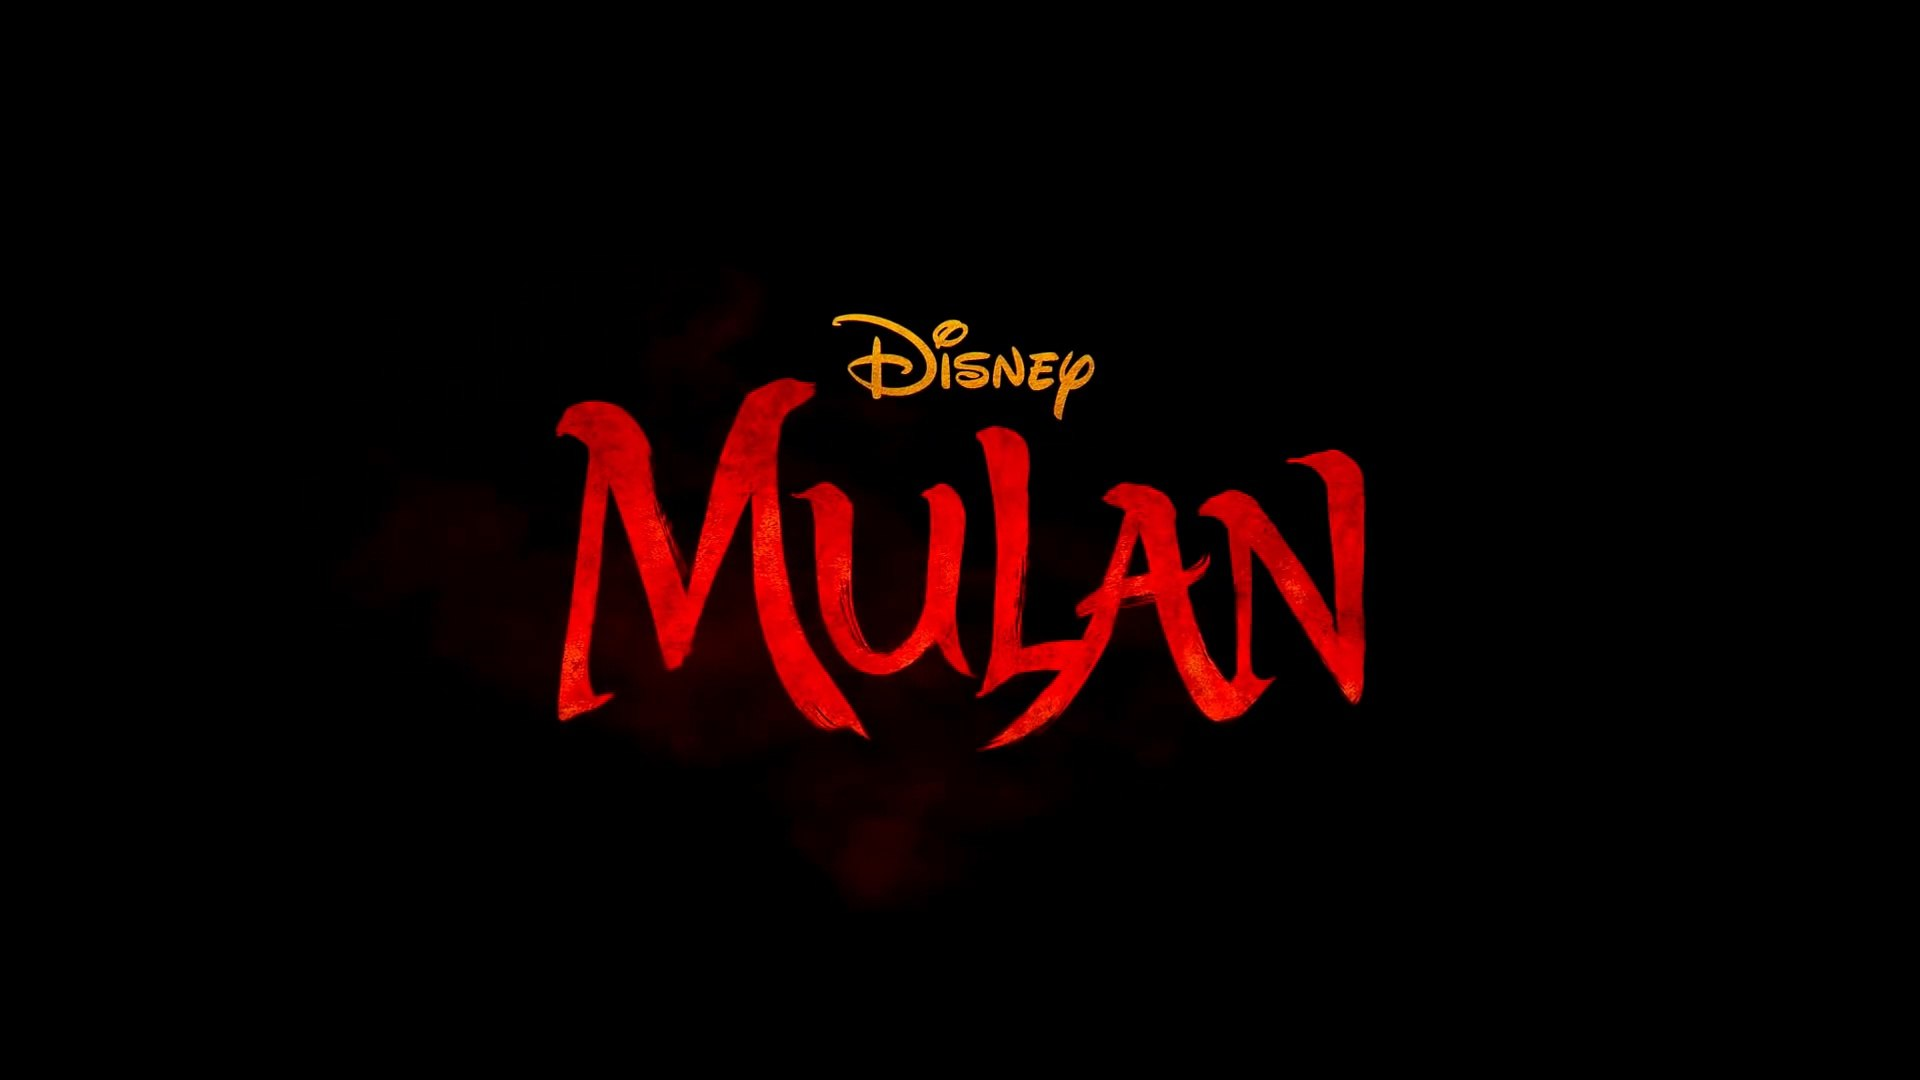 MULAN Movie Trailer (2020) | Making of Movie MULAN (2020)